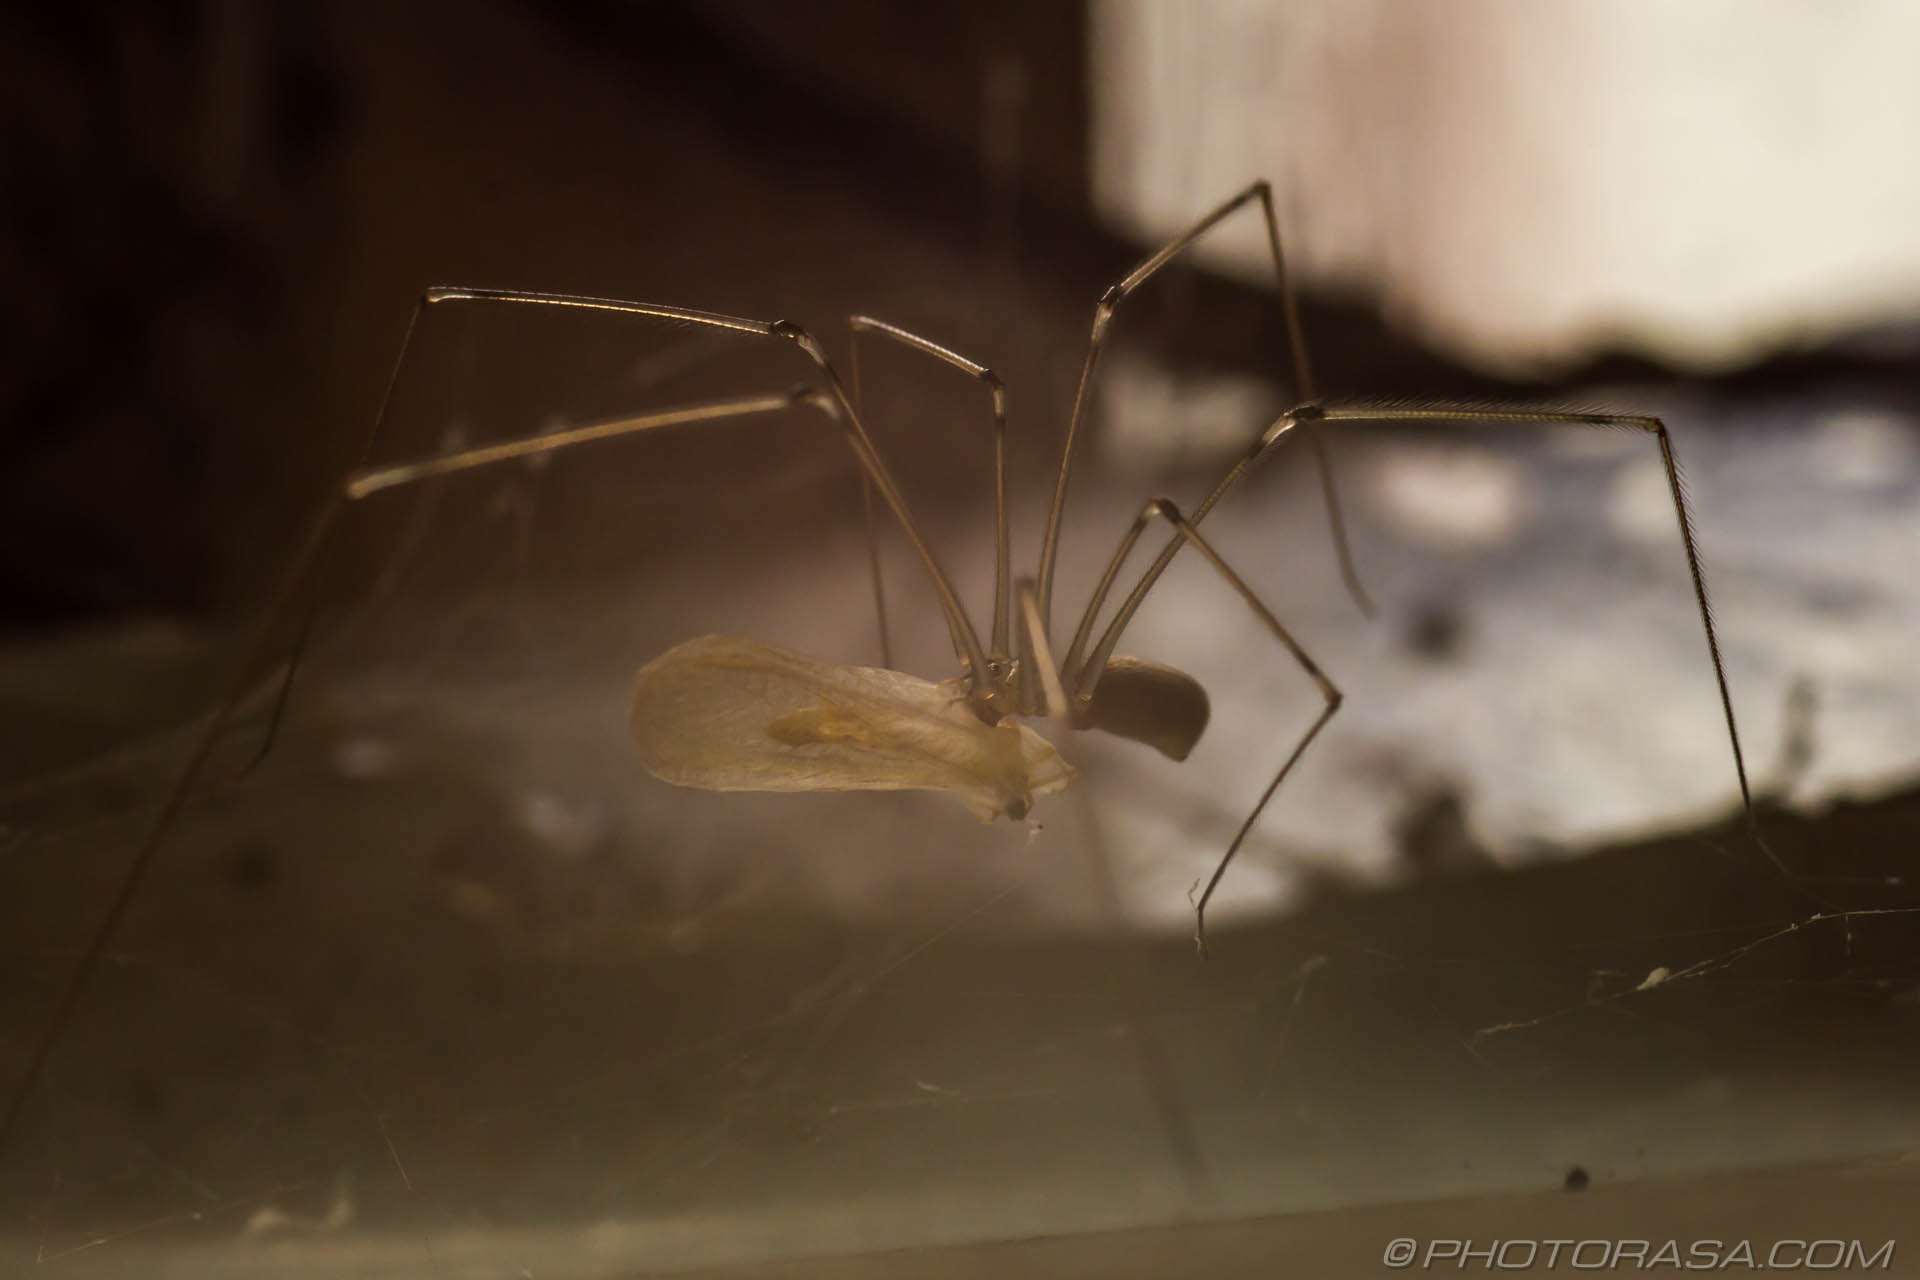 http://photorasa.com/cellar-spiders/daddy-long-legs-eating-captured-prey/